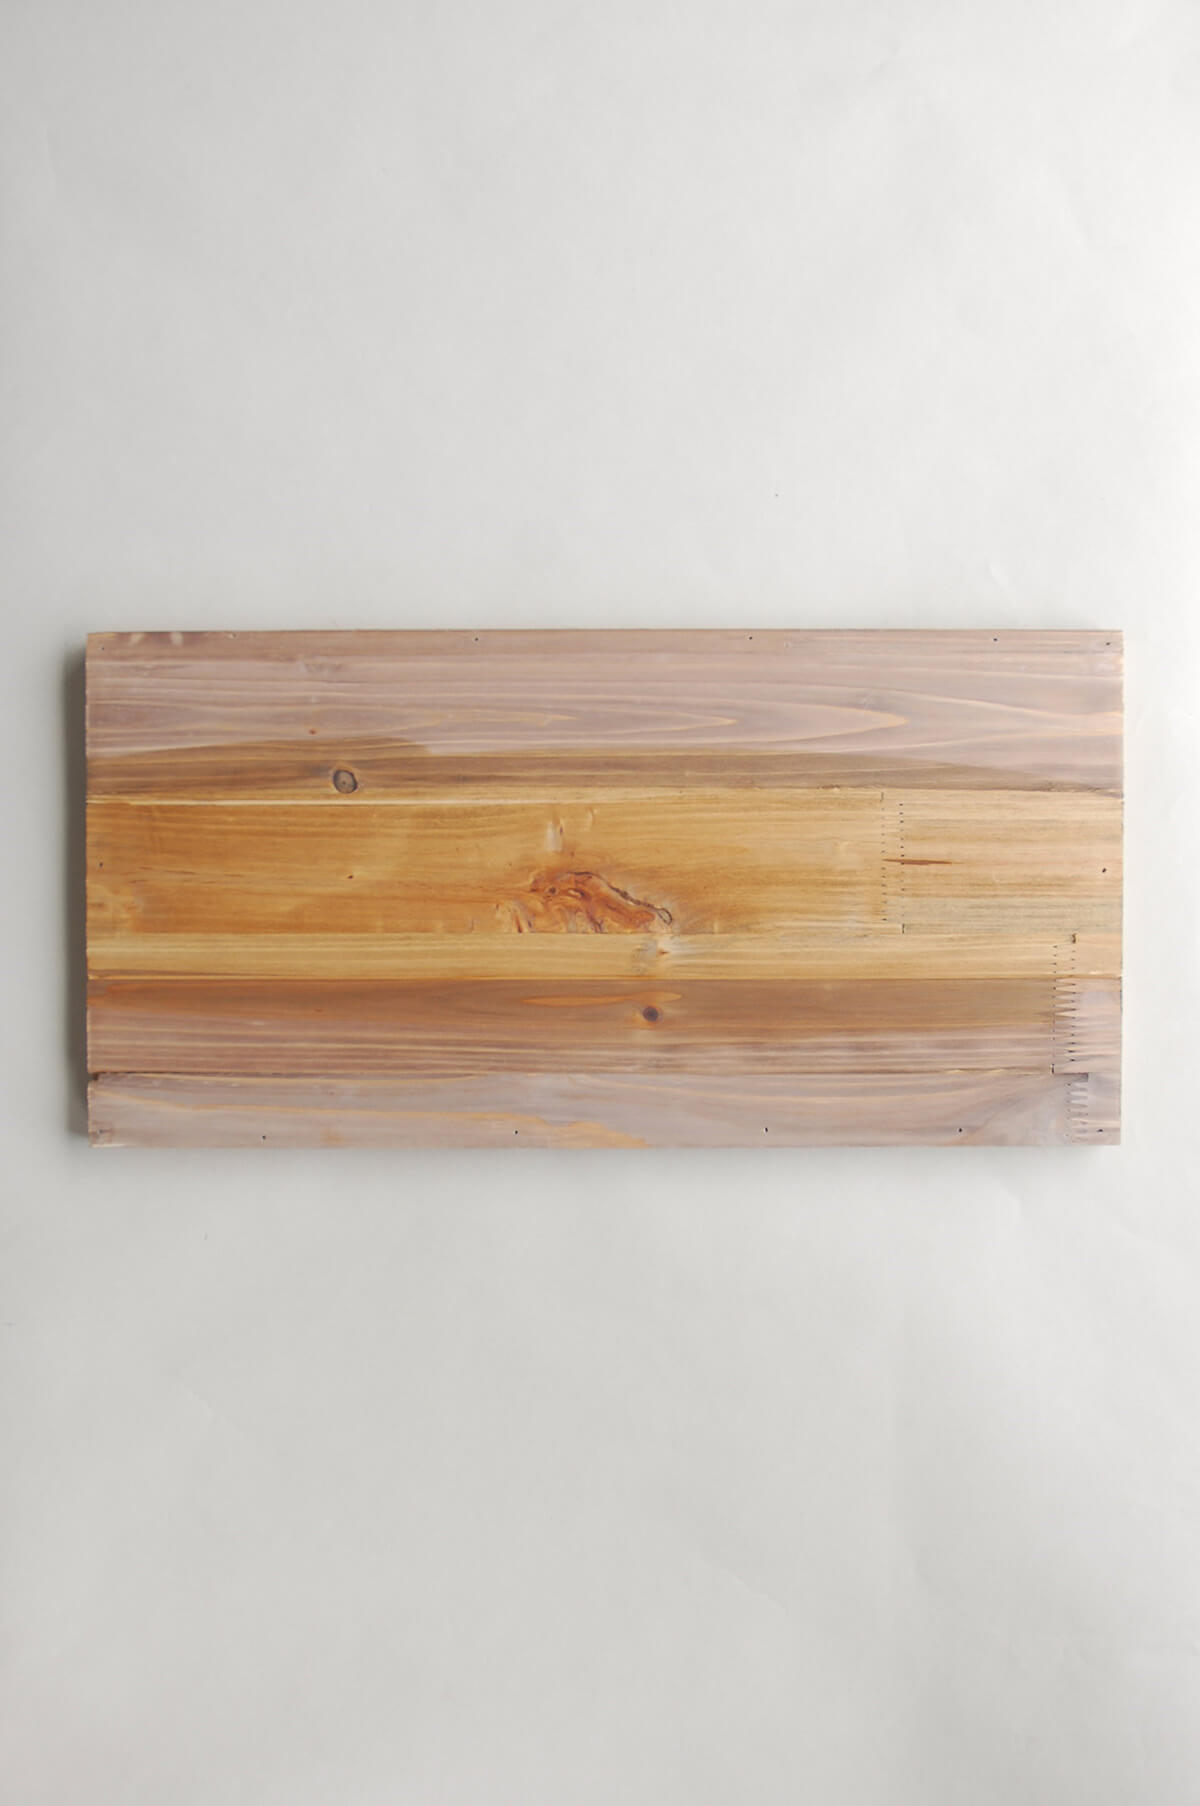 Wood Slices Rounds Planks & Branches